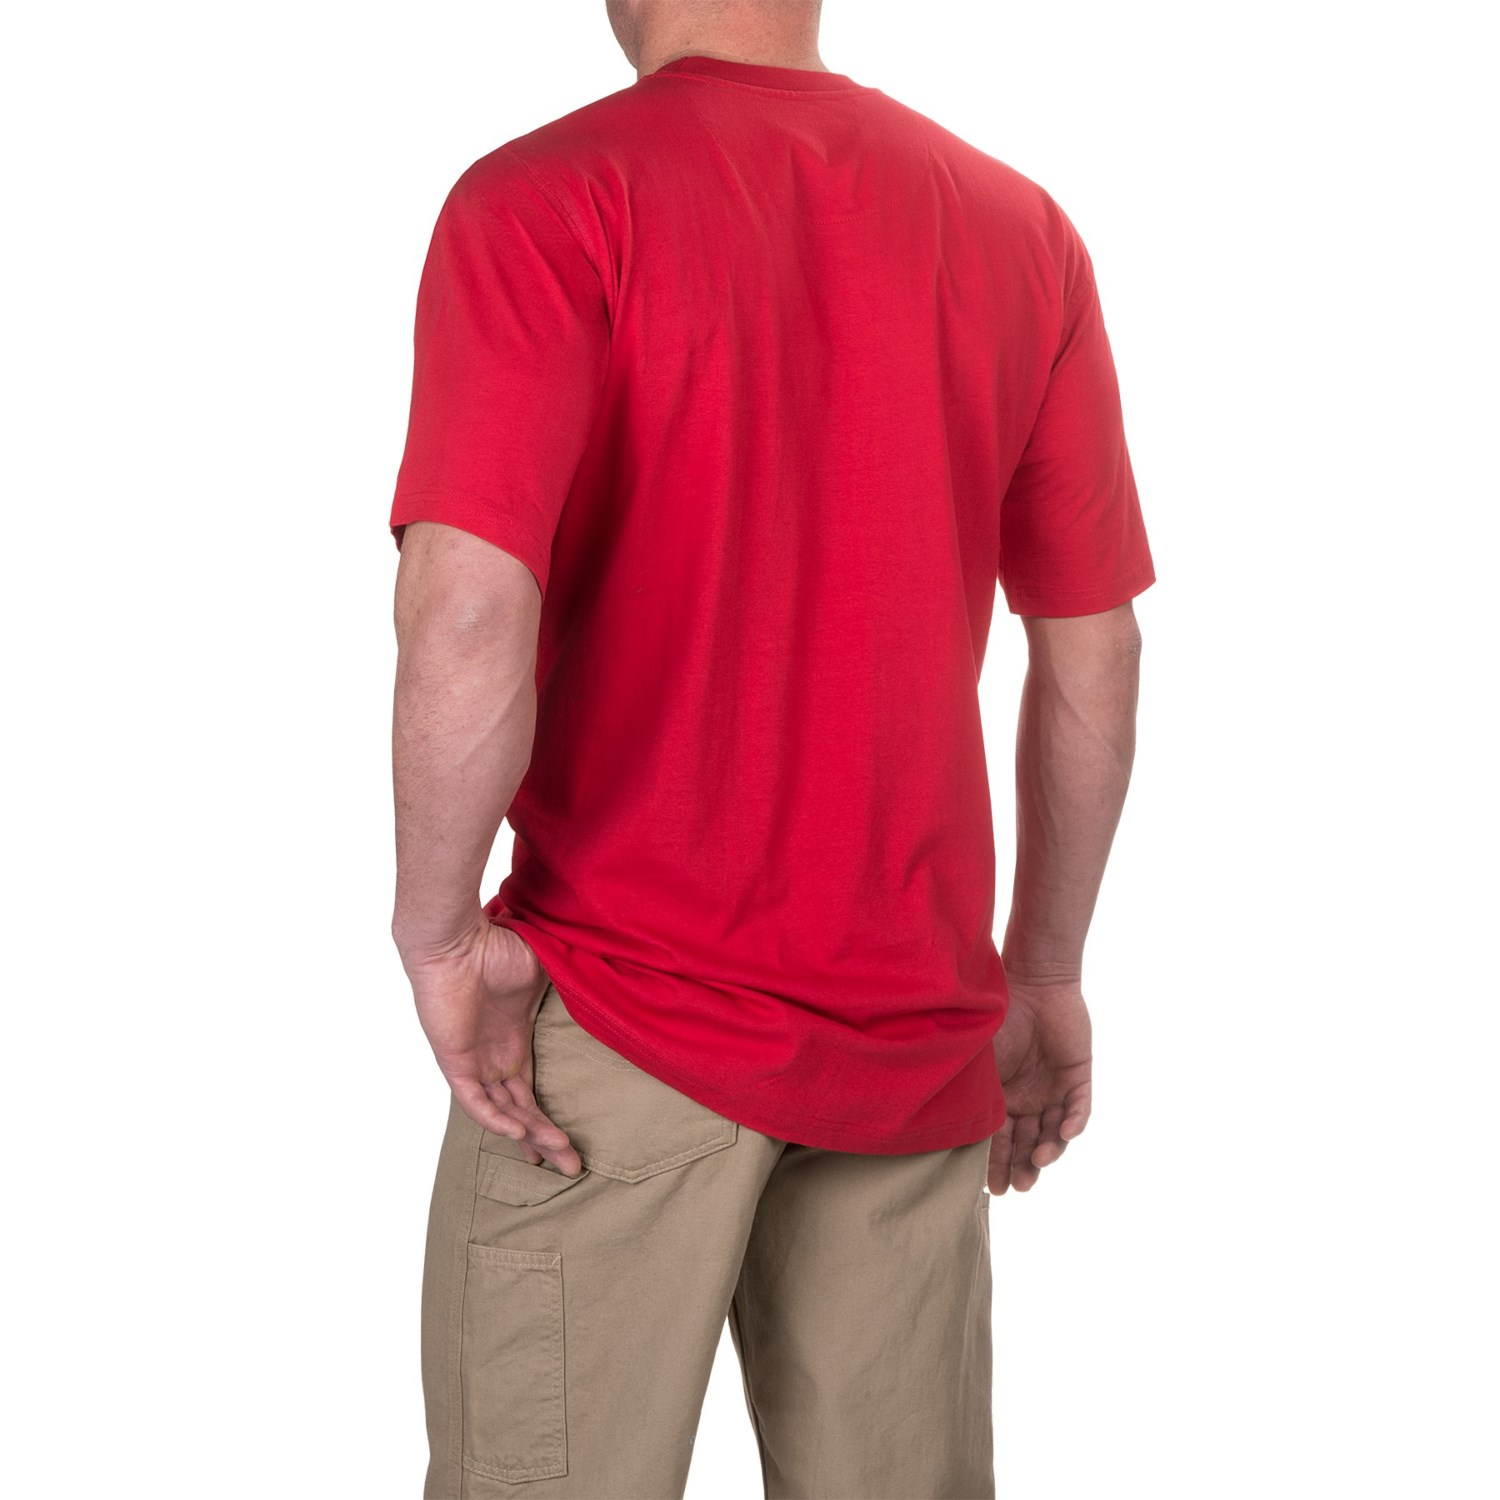 Case ih pocket t shirt for big and tall men save 58 for Big and tall quick dry shirts